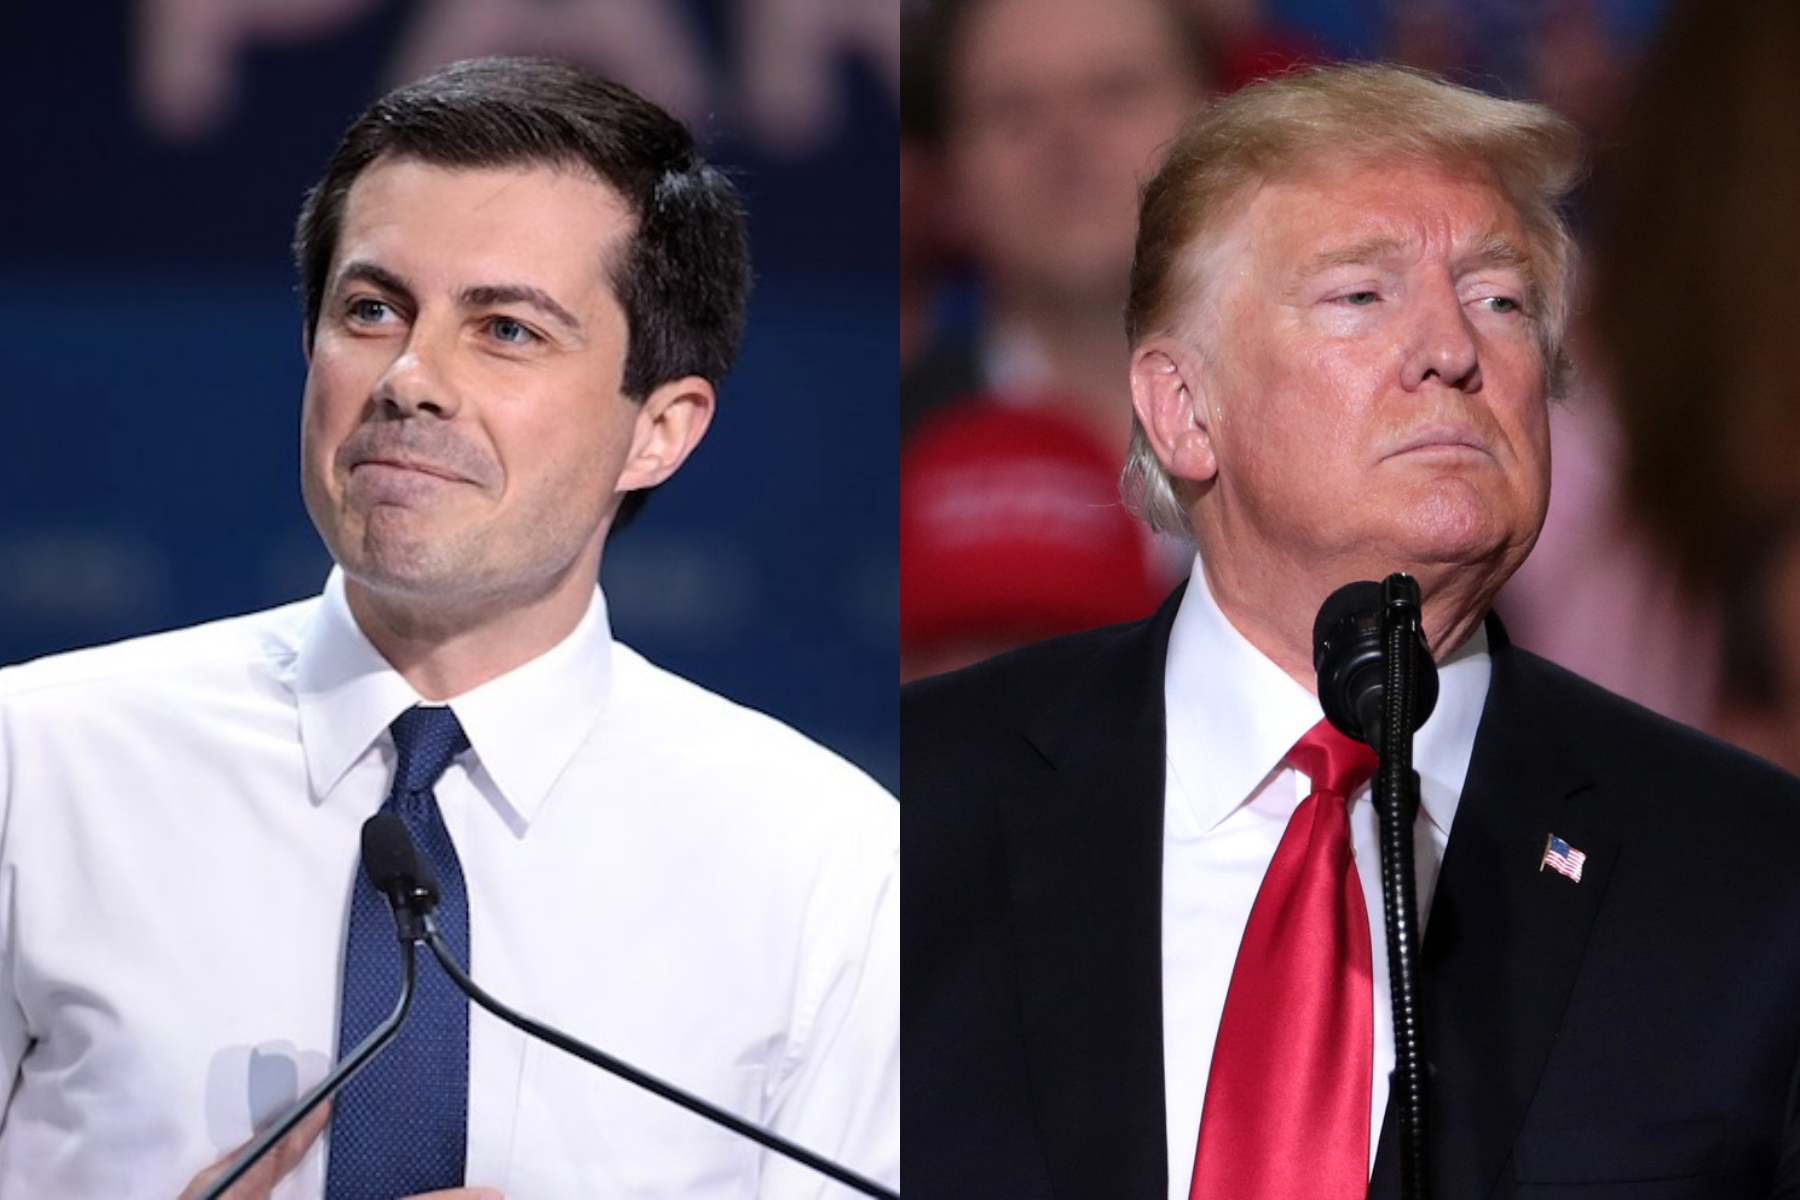 buttigieg, trump, gay, christian, religion